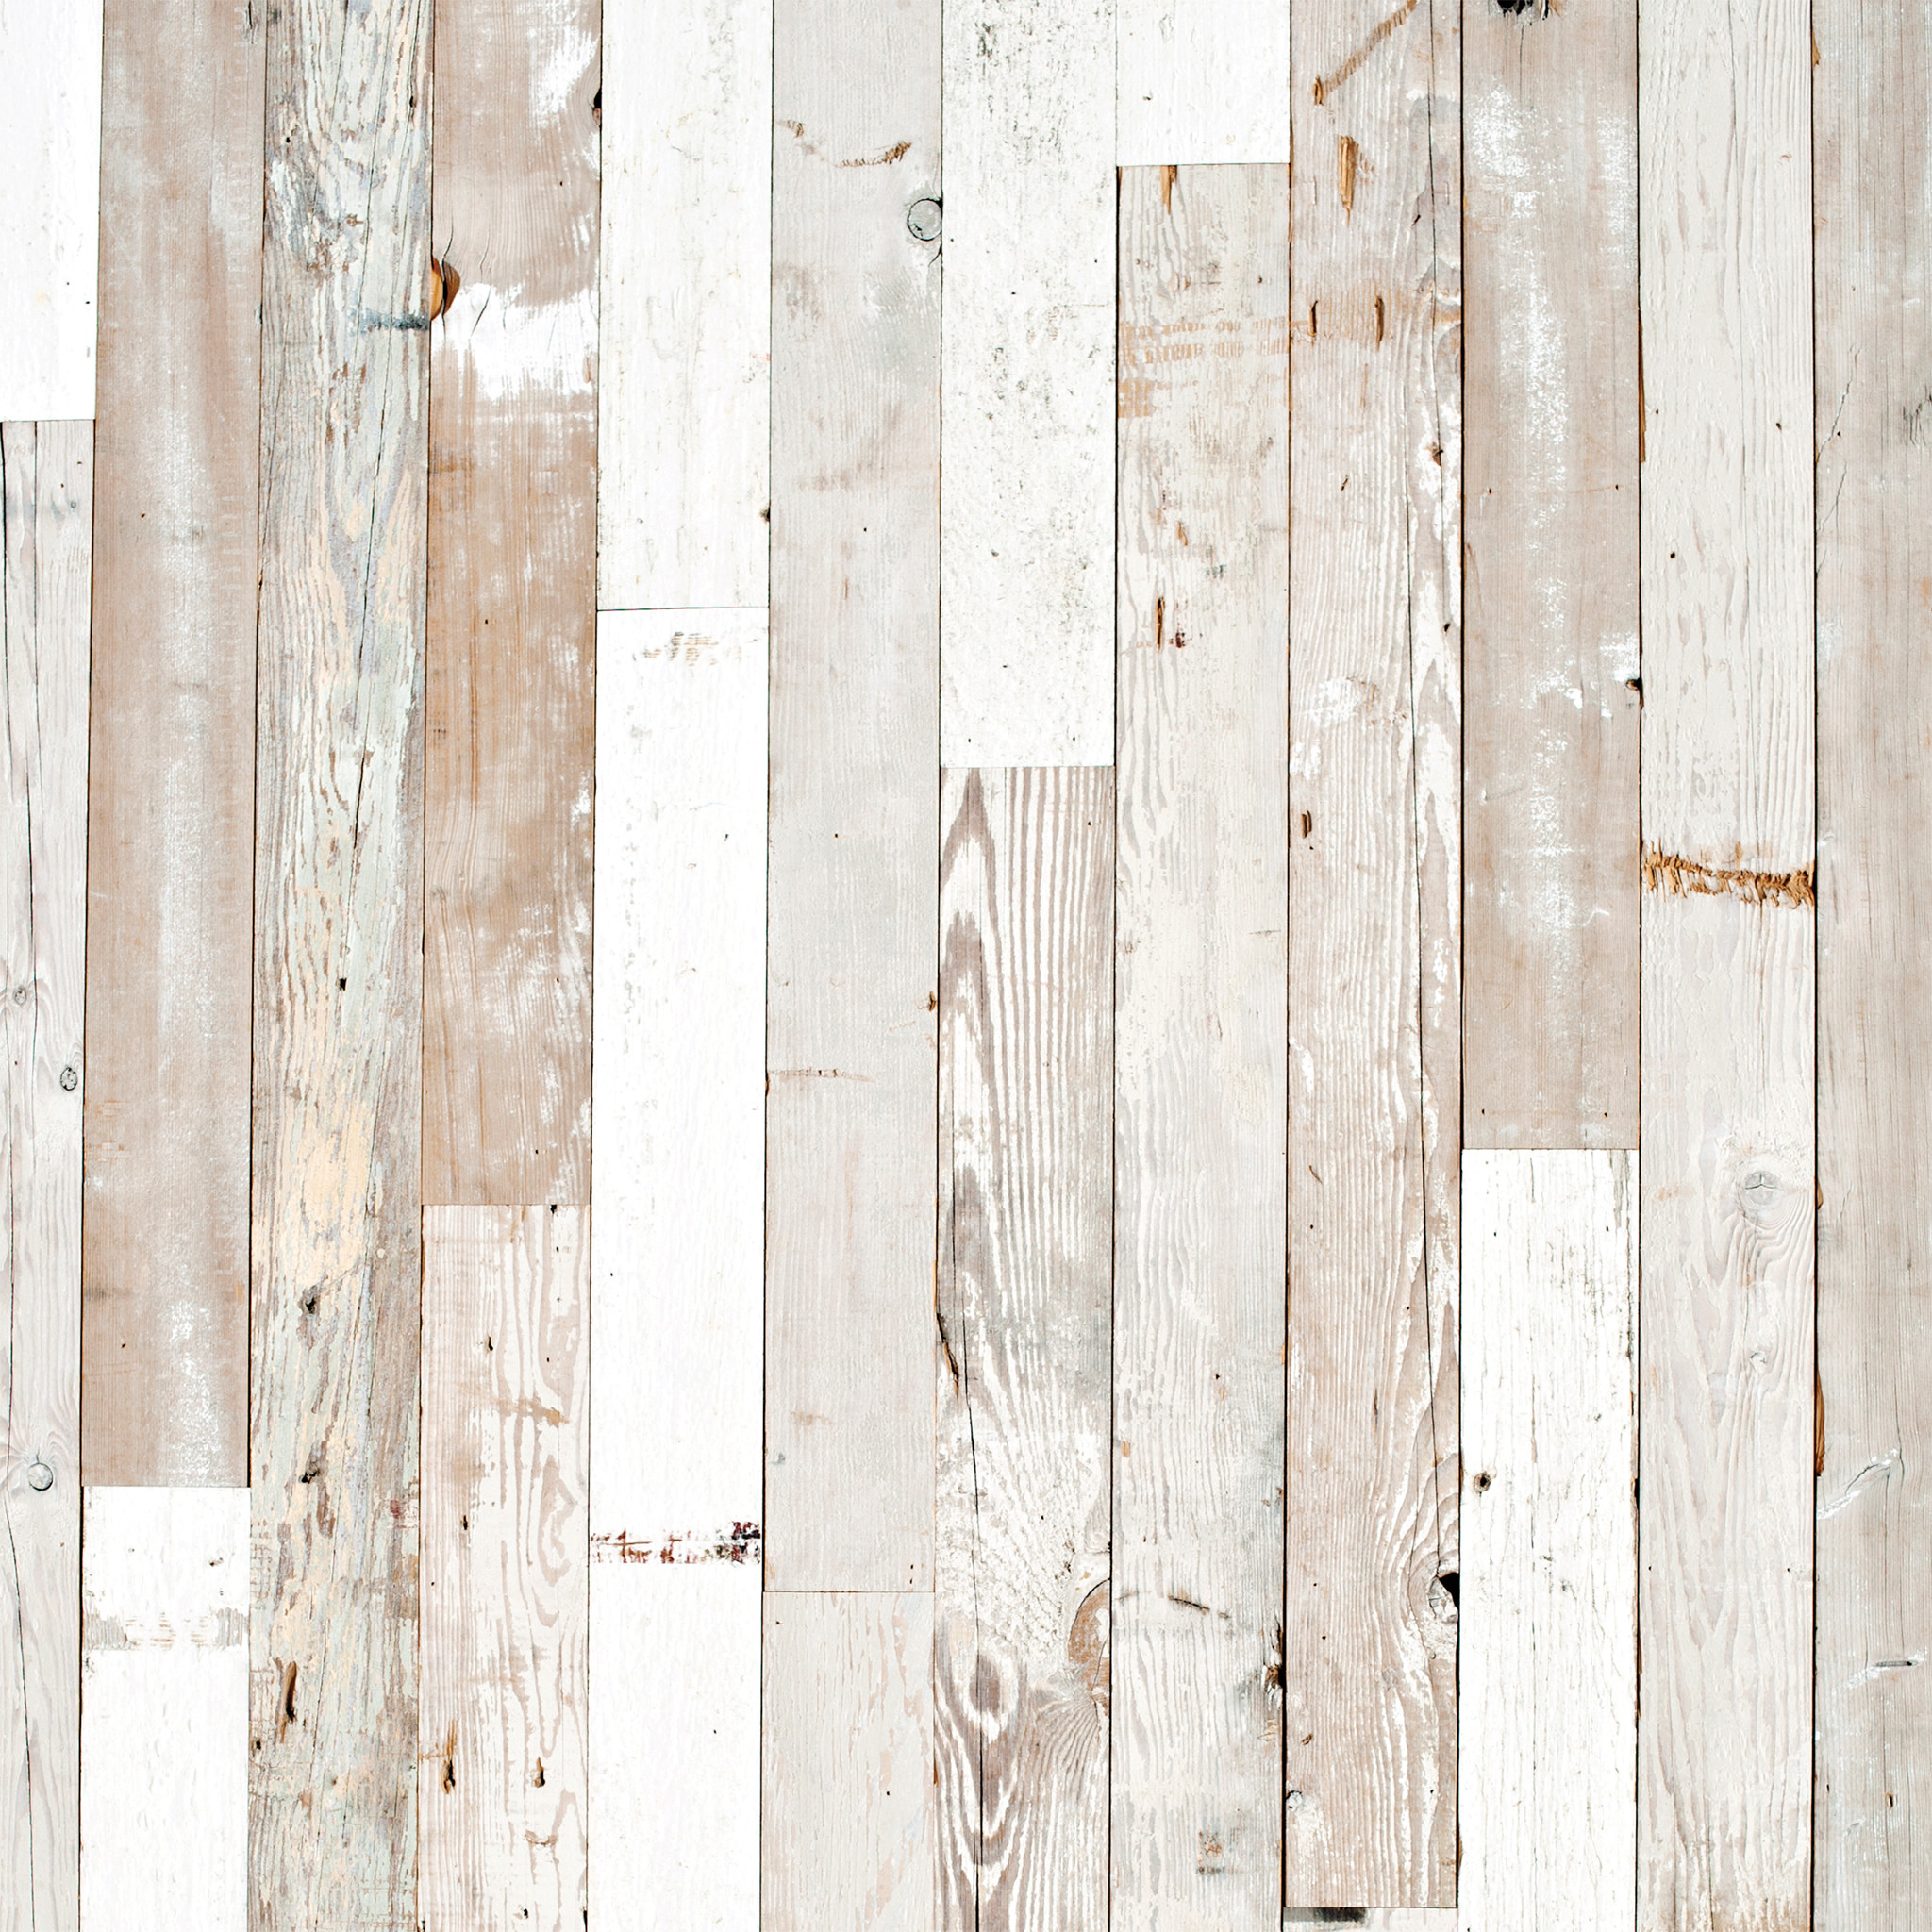 White wood texture related keywords amp suggestions white wood texture - White Washed Wood Floor Texture Rustic White Wash Photo